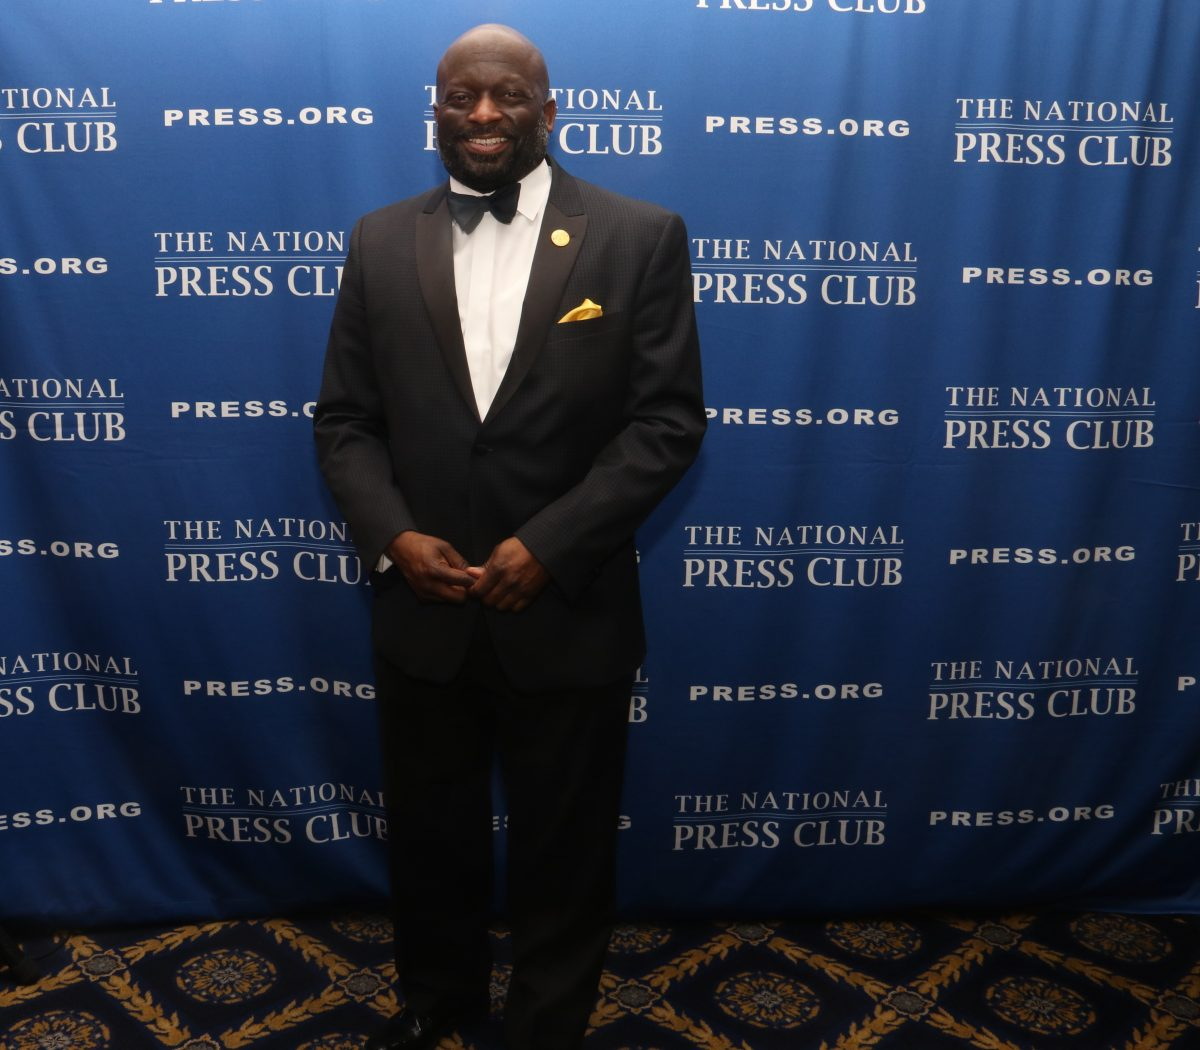 Jeffrey Ballou, news editor for Al Jazeera Media, is the first male African American installed as the 110th President of the National Press Club during a gala event held at the National Press Club on Saturday, Jan. 14. /Photo by Shevry Lassiter